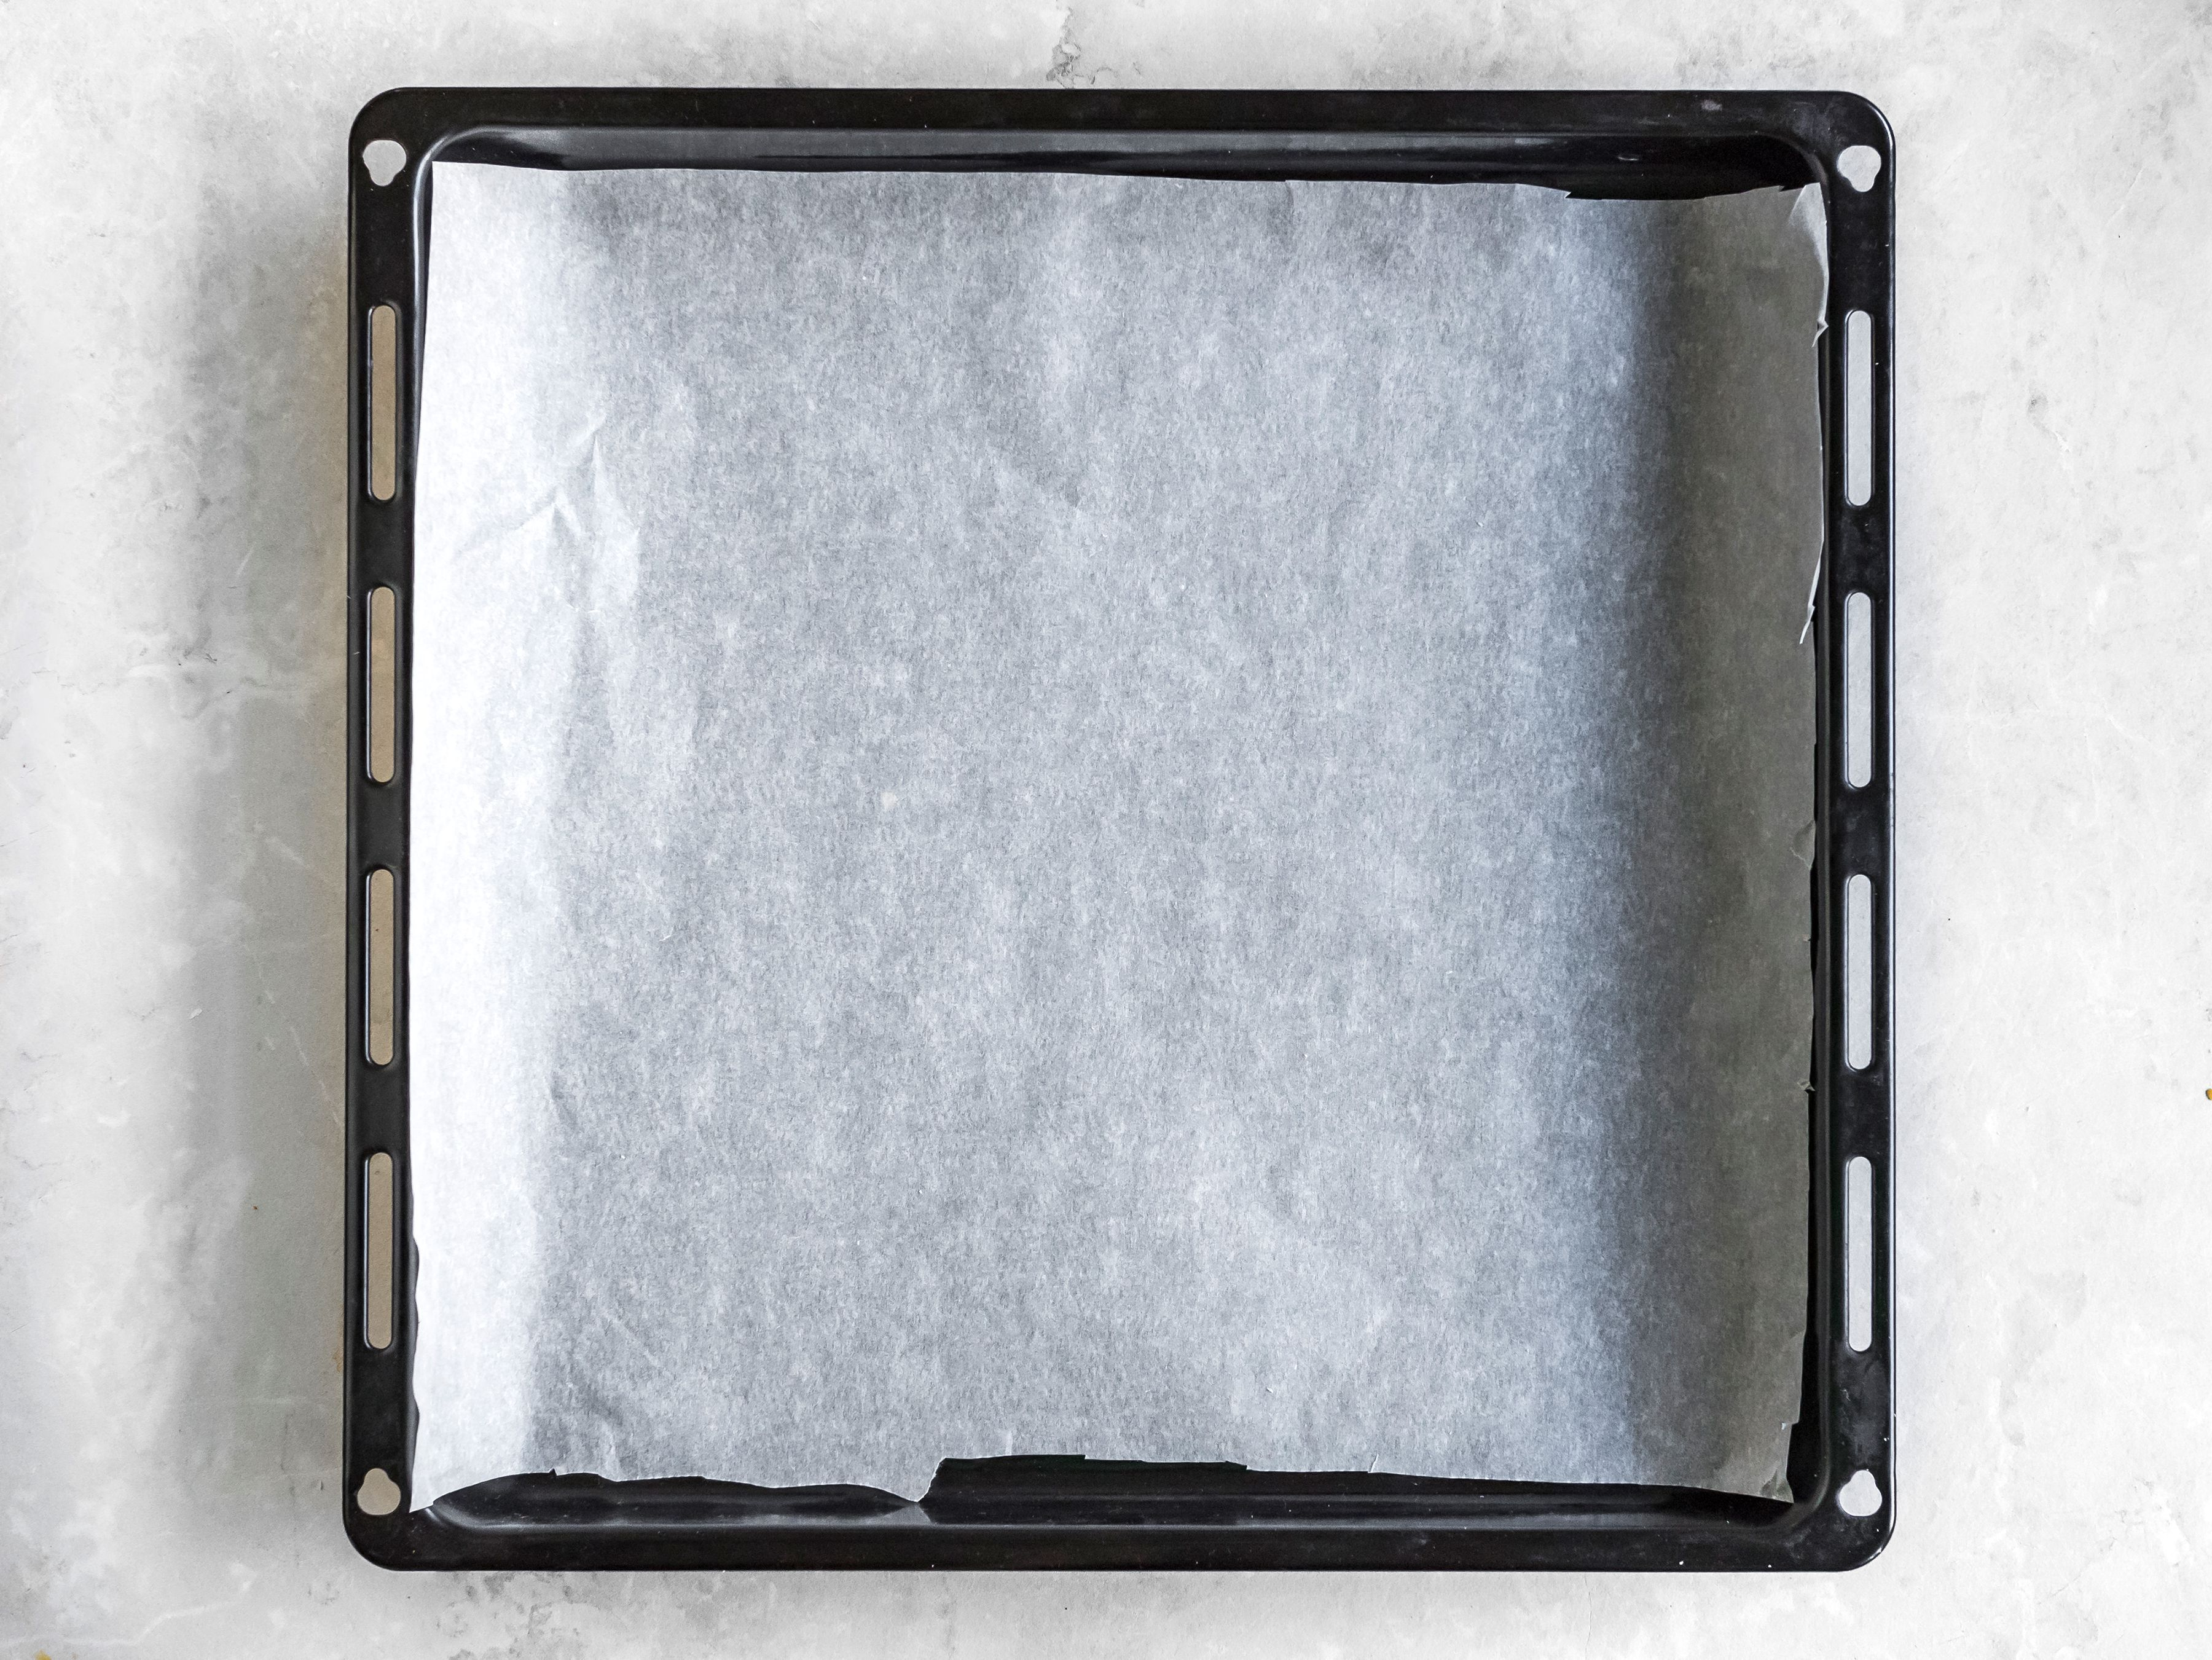 Line a baking sheet with parchment